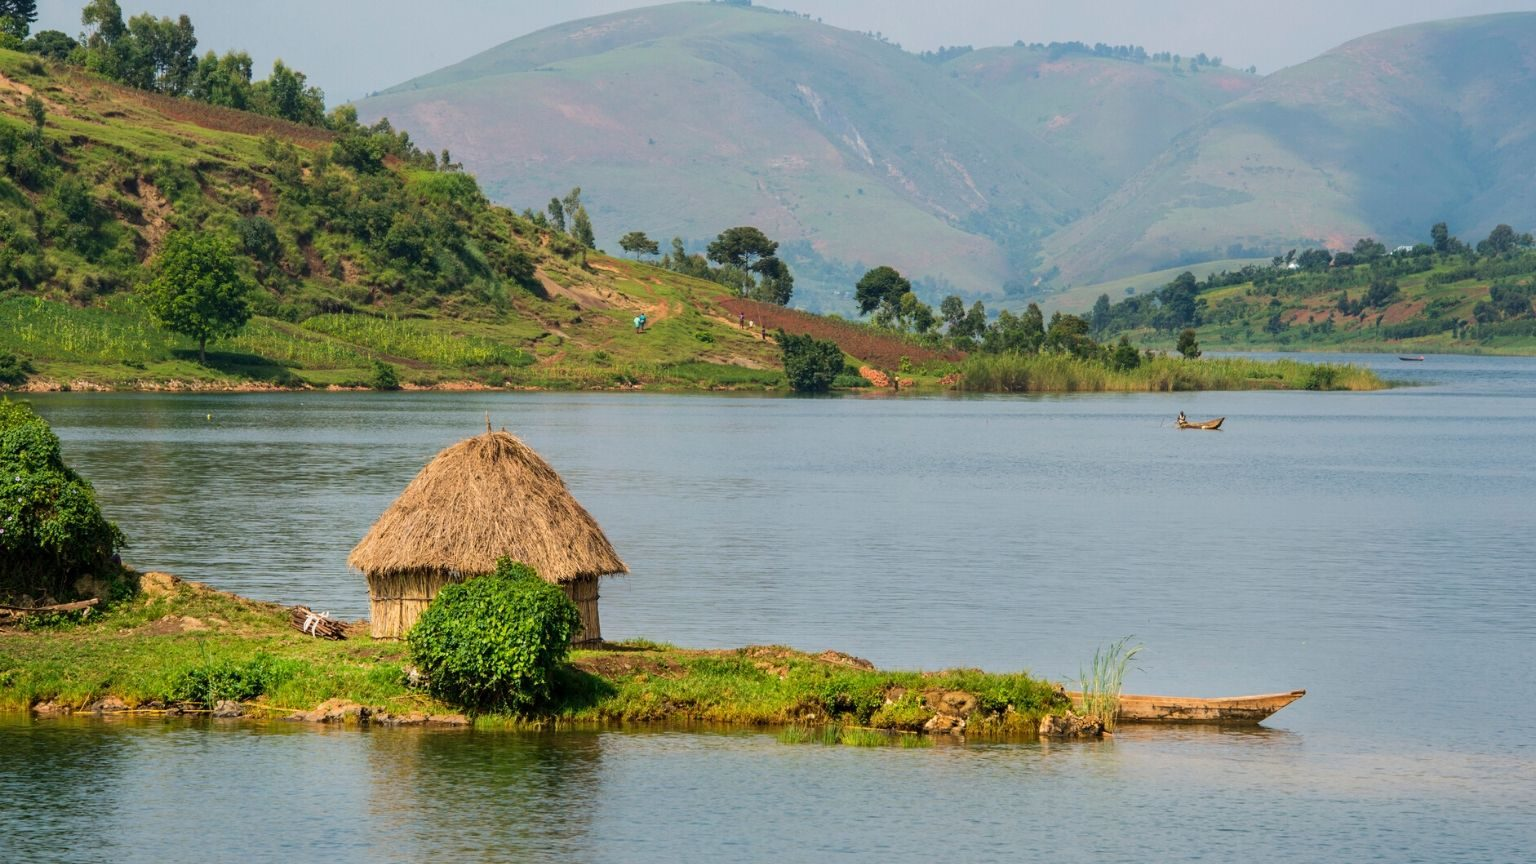 Shoreline of Lake Kivu